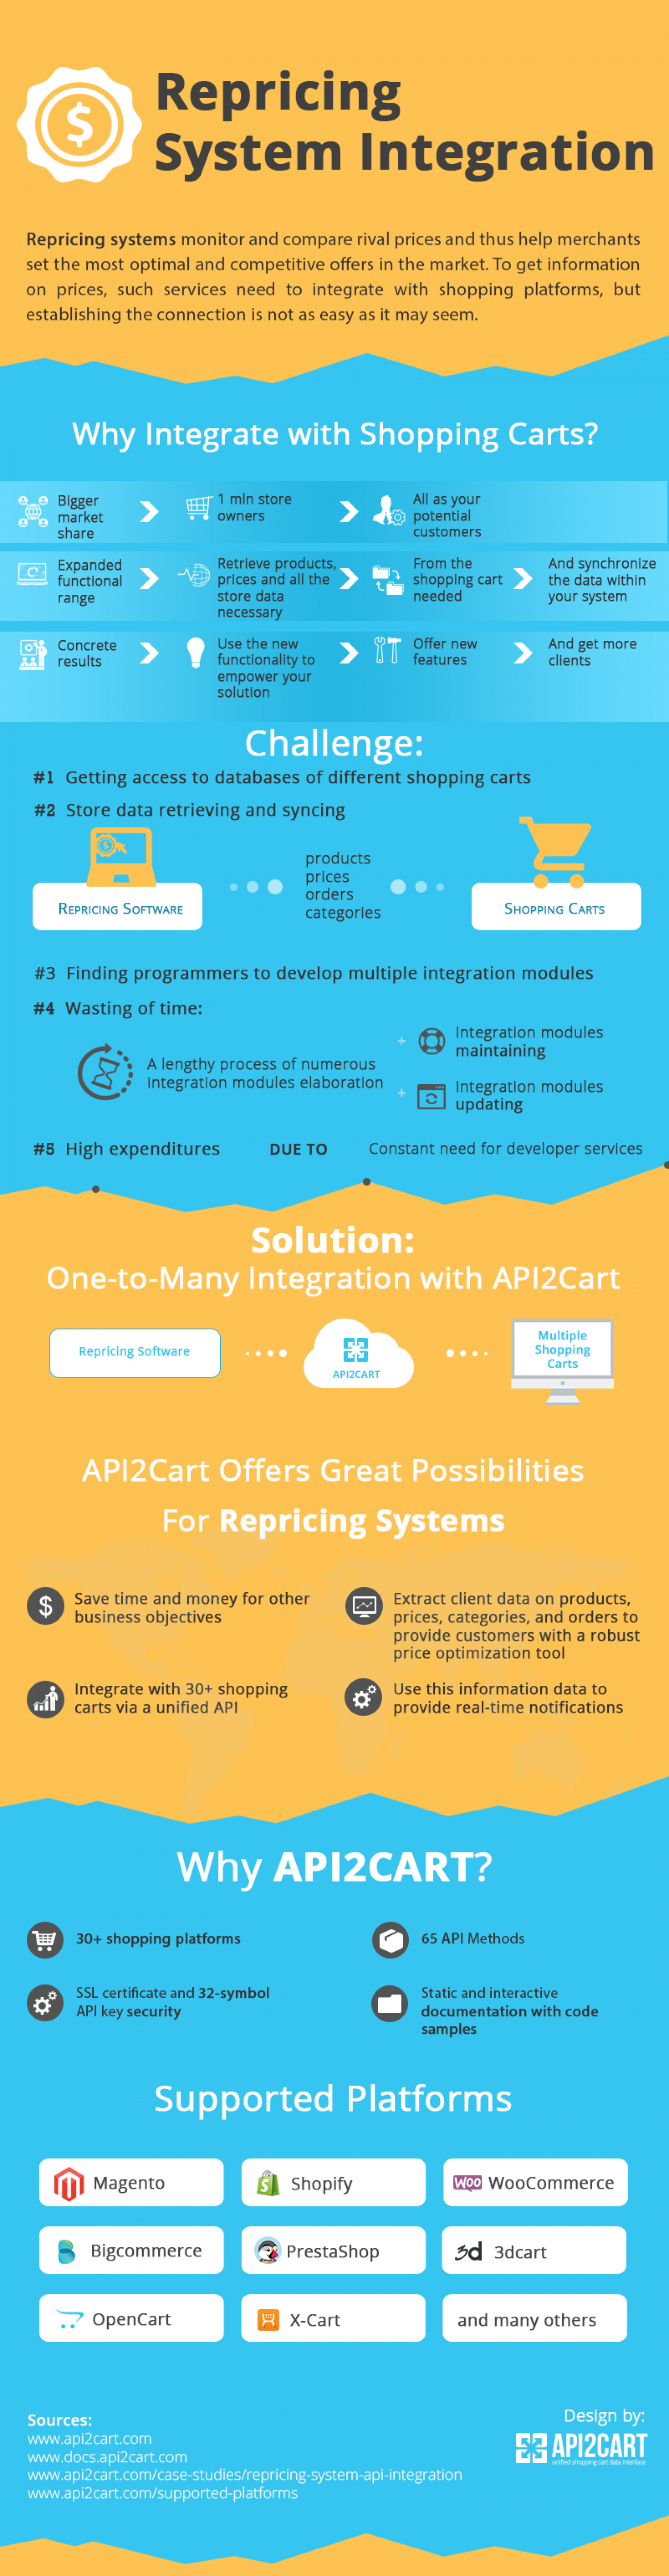 Repricing System Integration Infographic